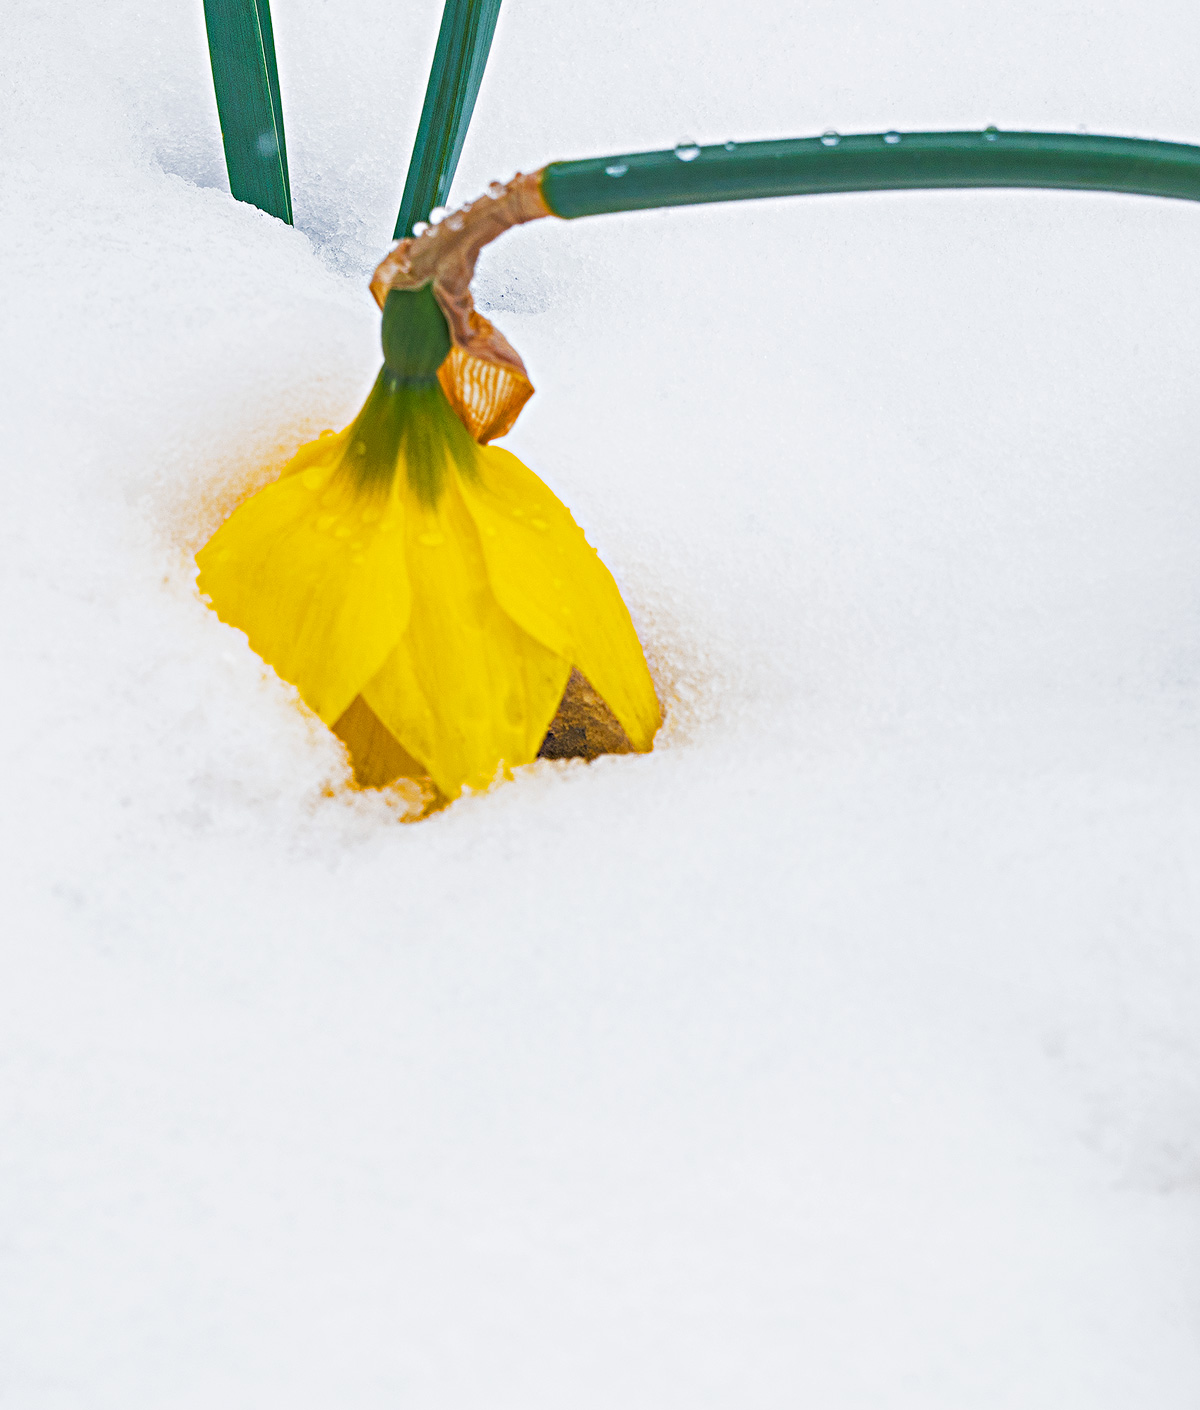 xeriscape, Colorado springs, Colorado, daffodil. snowstorm, photo